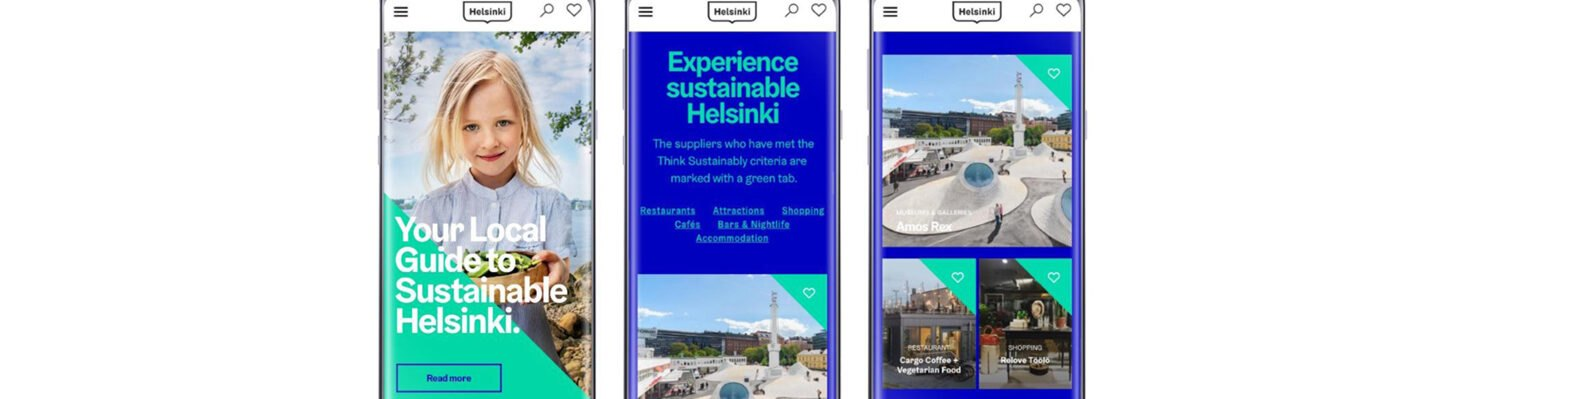 Think Sustainably homepage on a smartphone